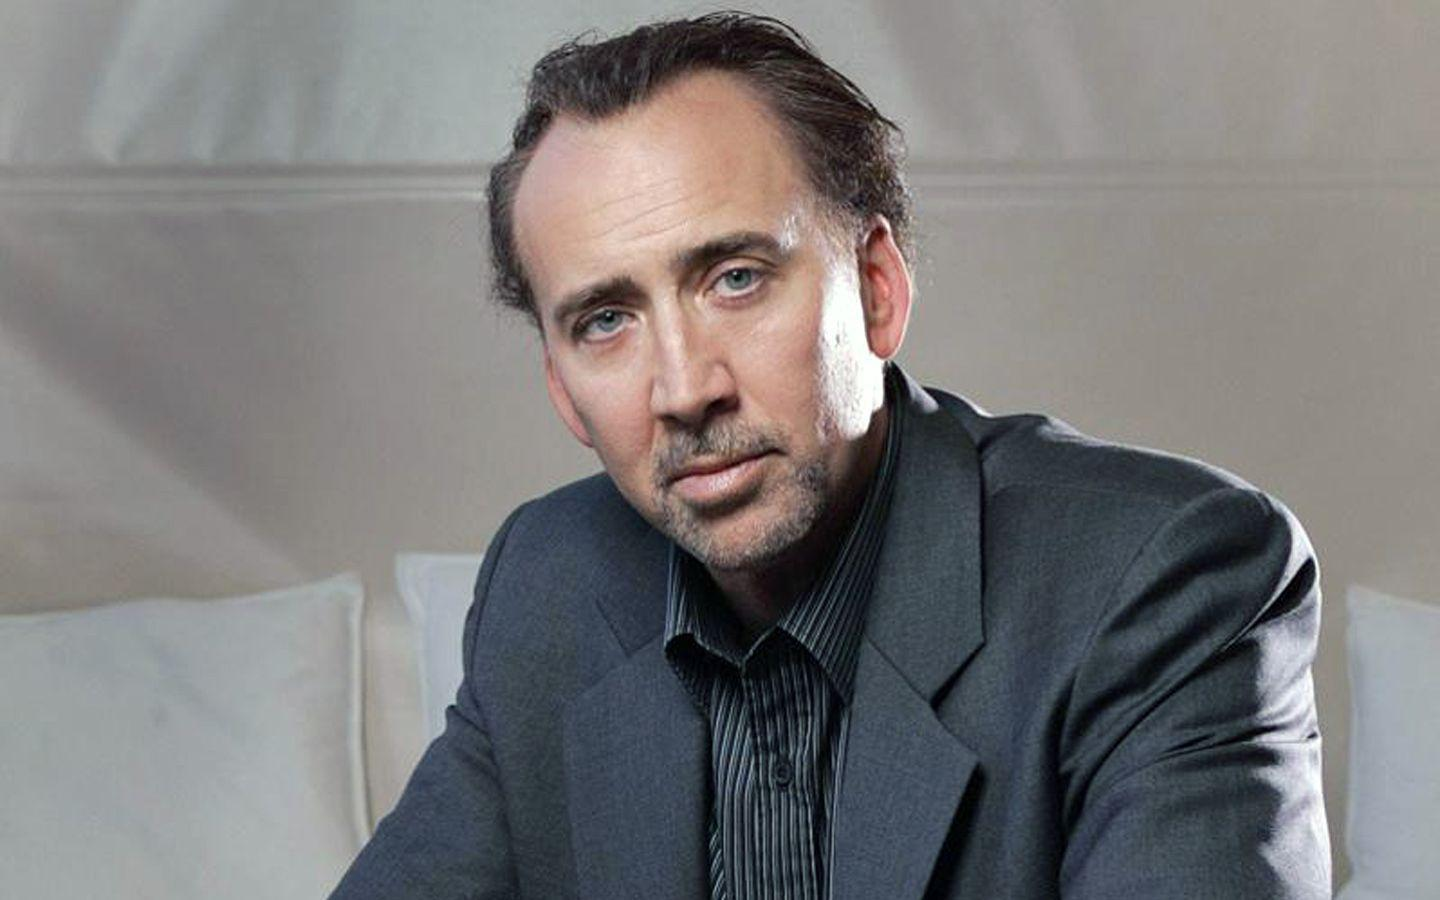 Image For > Nicolas Cage Wallpapers 1920x1080